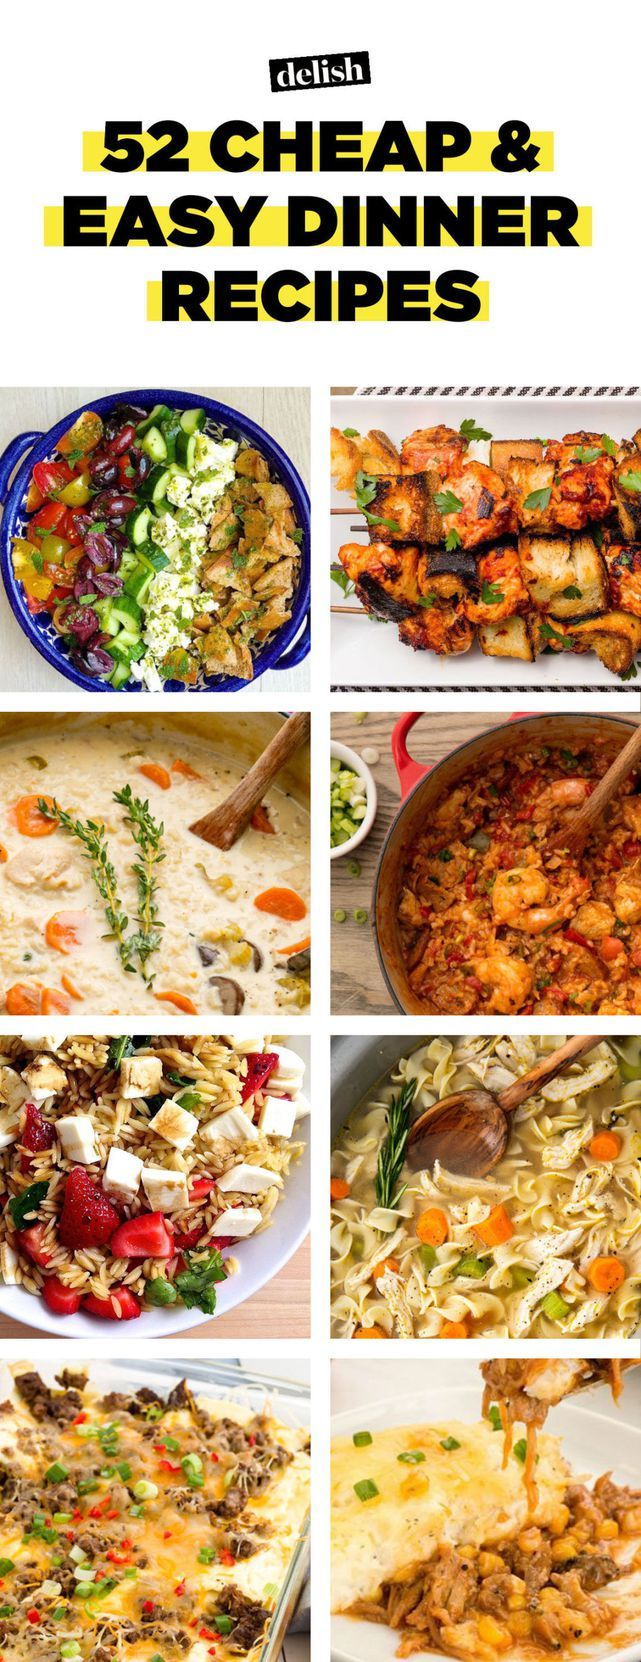 70+ Cheap And Easy Dinner Recipes So You Never Have To Cook A Boring Meal Again images